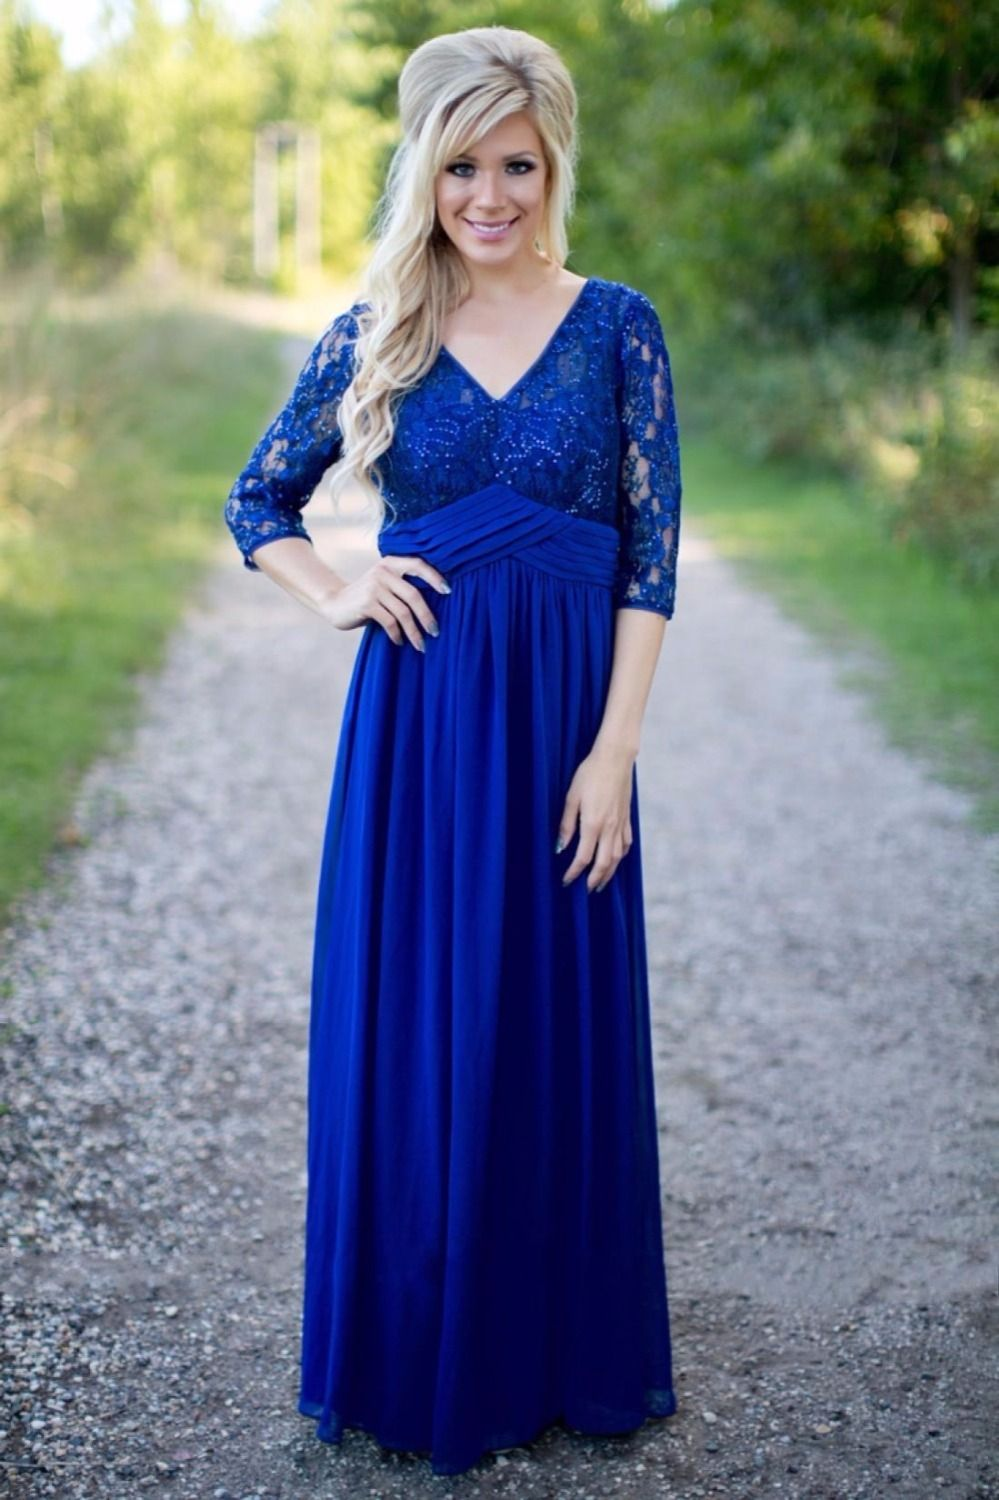 Country Royal Blue Long Modest Bridesmaid Dresses With Sleeves V Neck Lace  Top Chiffon Skirt Rustic 14e35a77bdbf